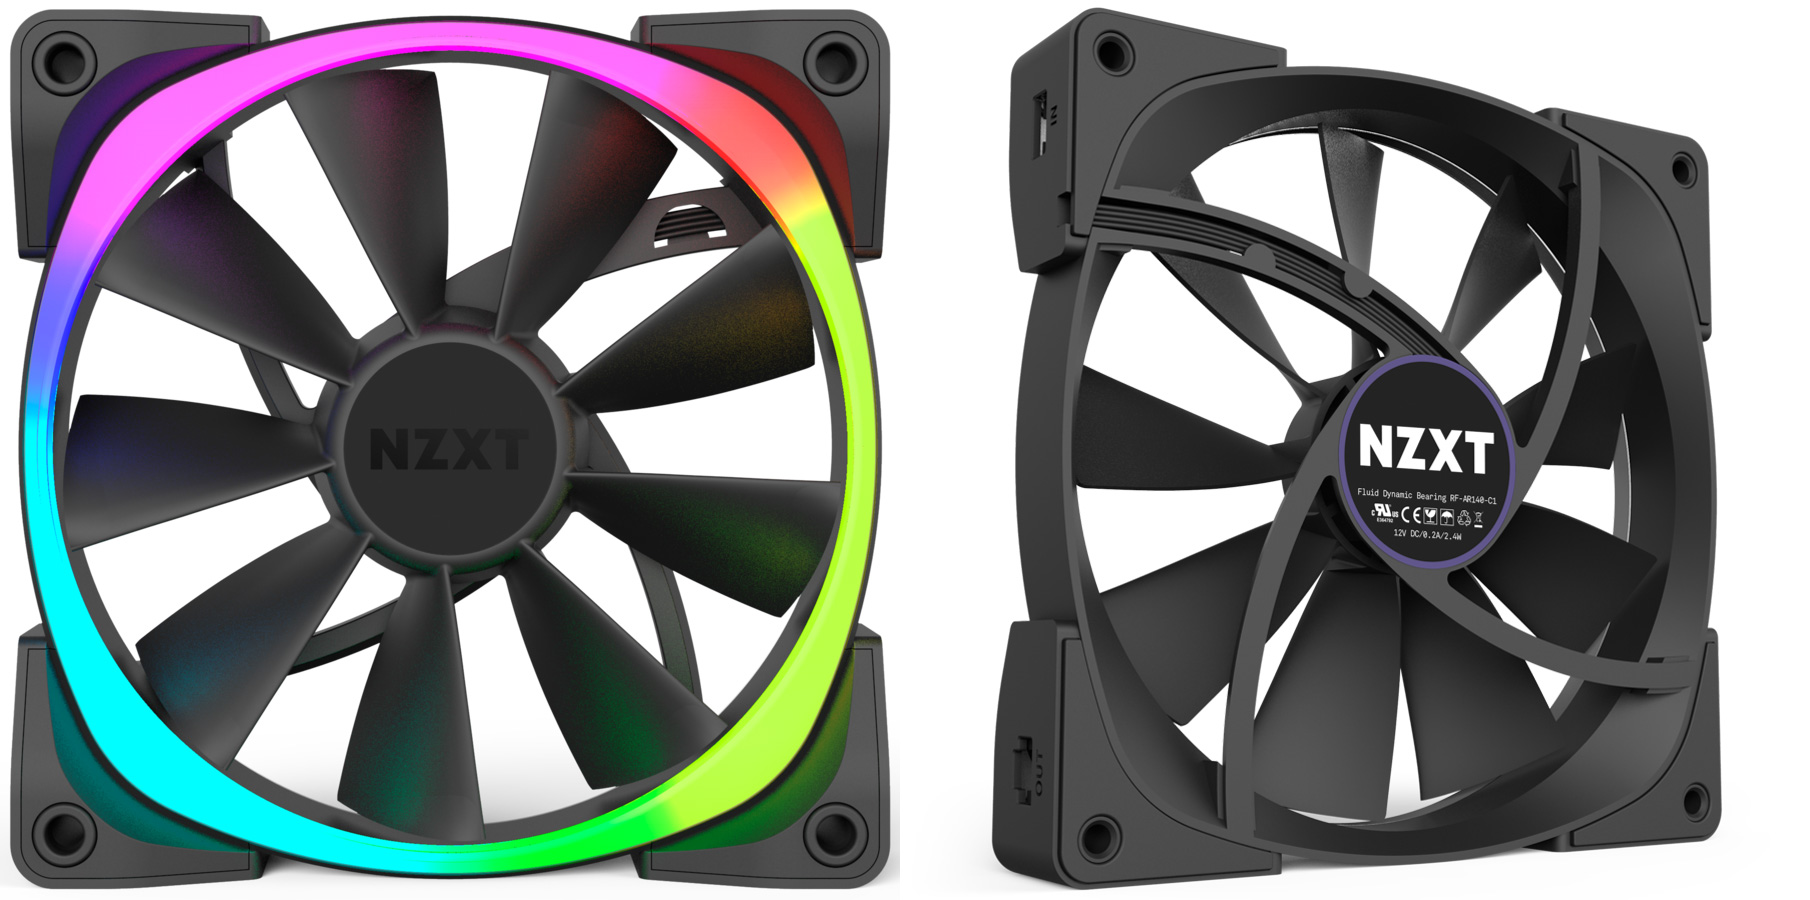 NZXT Aer RGB review: these case fans are pretty, clever - Review